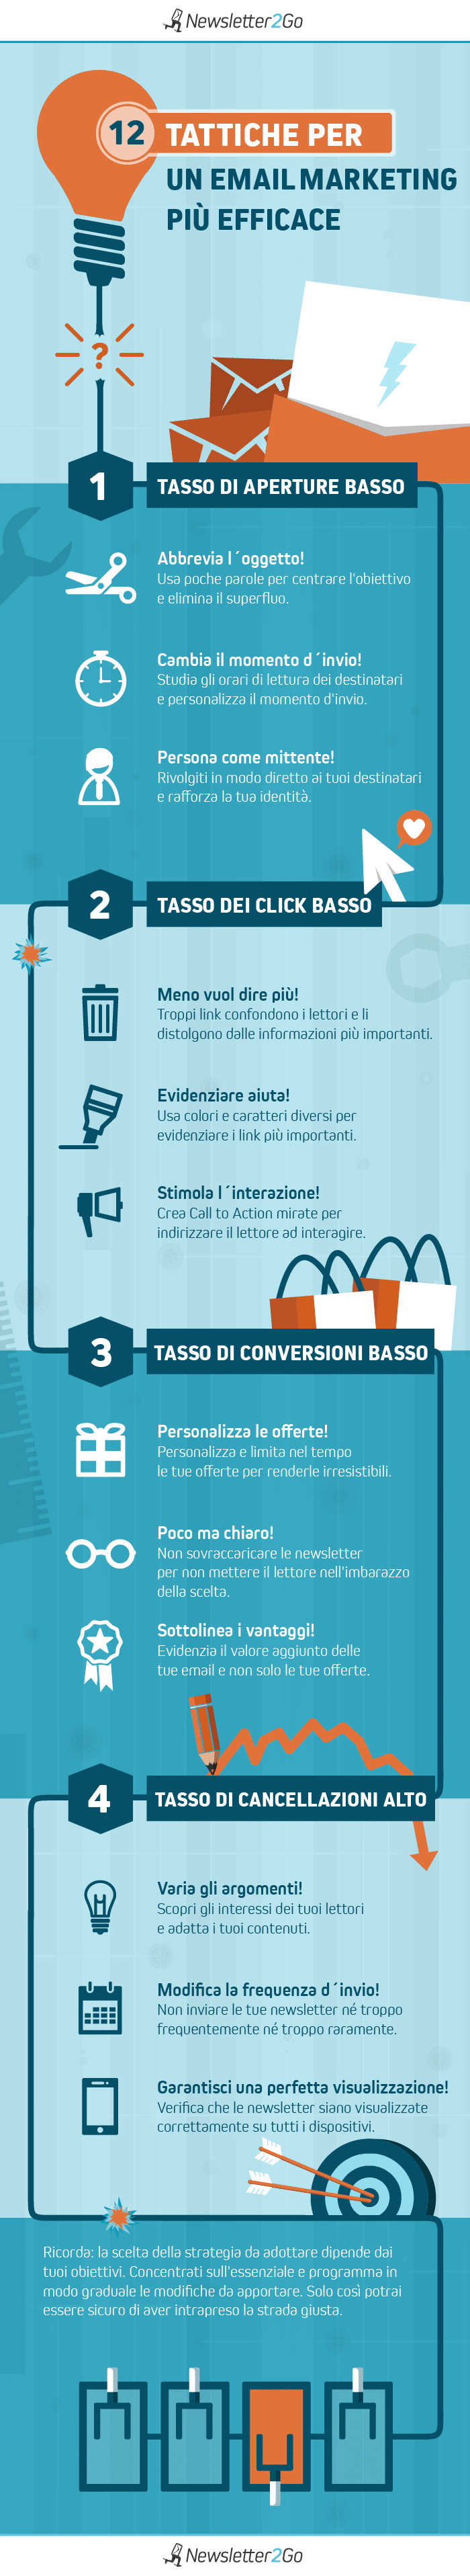 Infografica Newsletter2Go: tattiche di email marketing